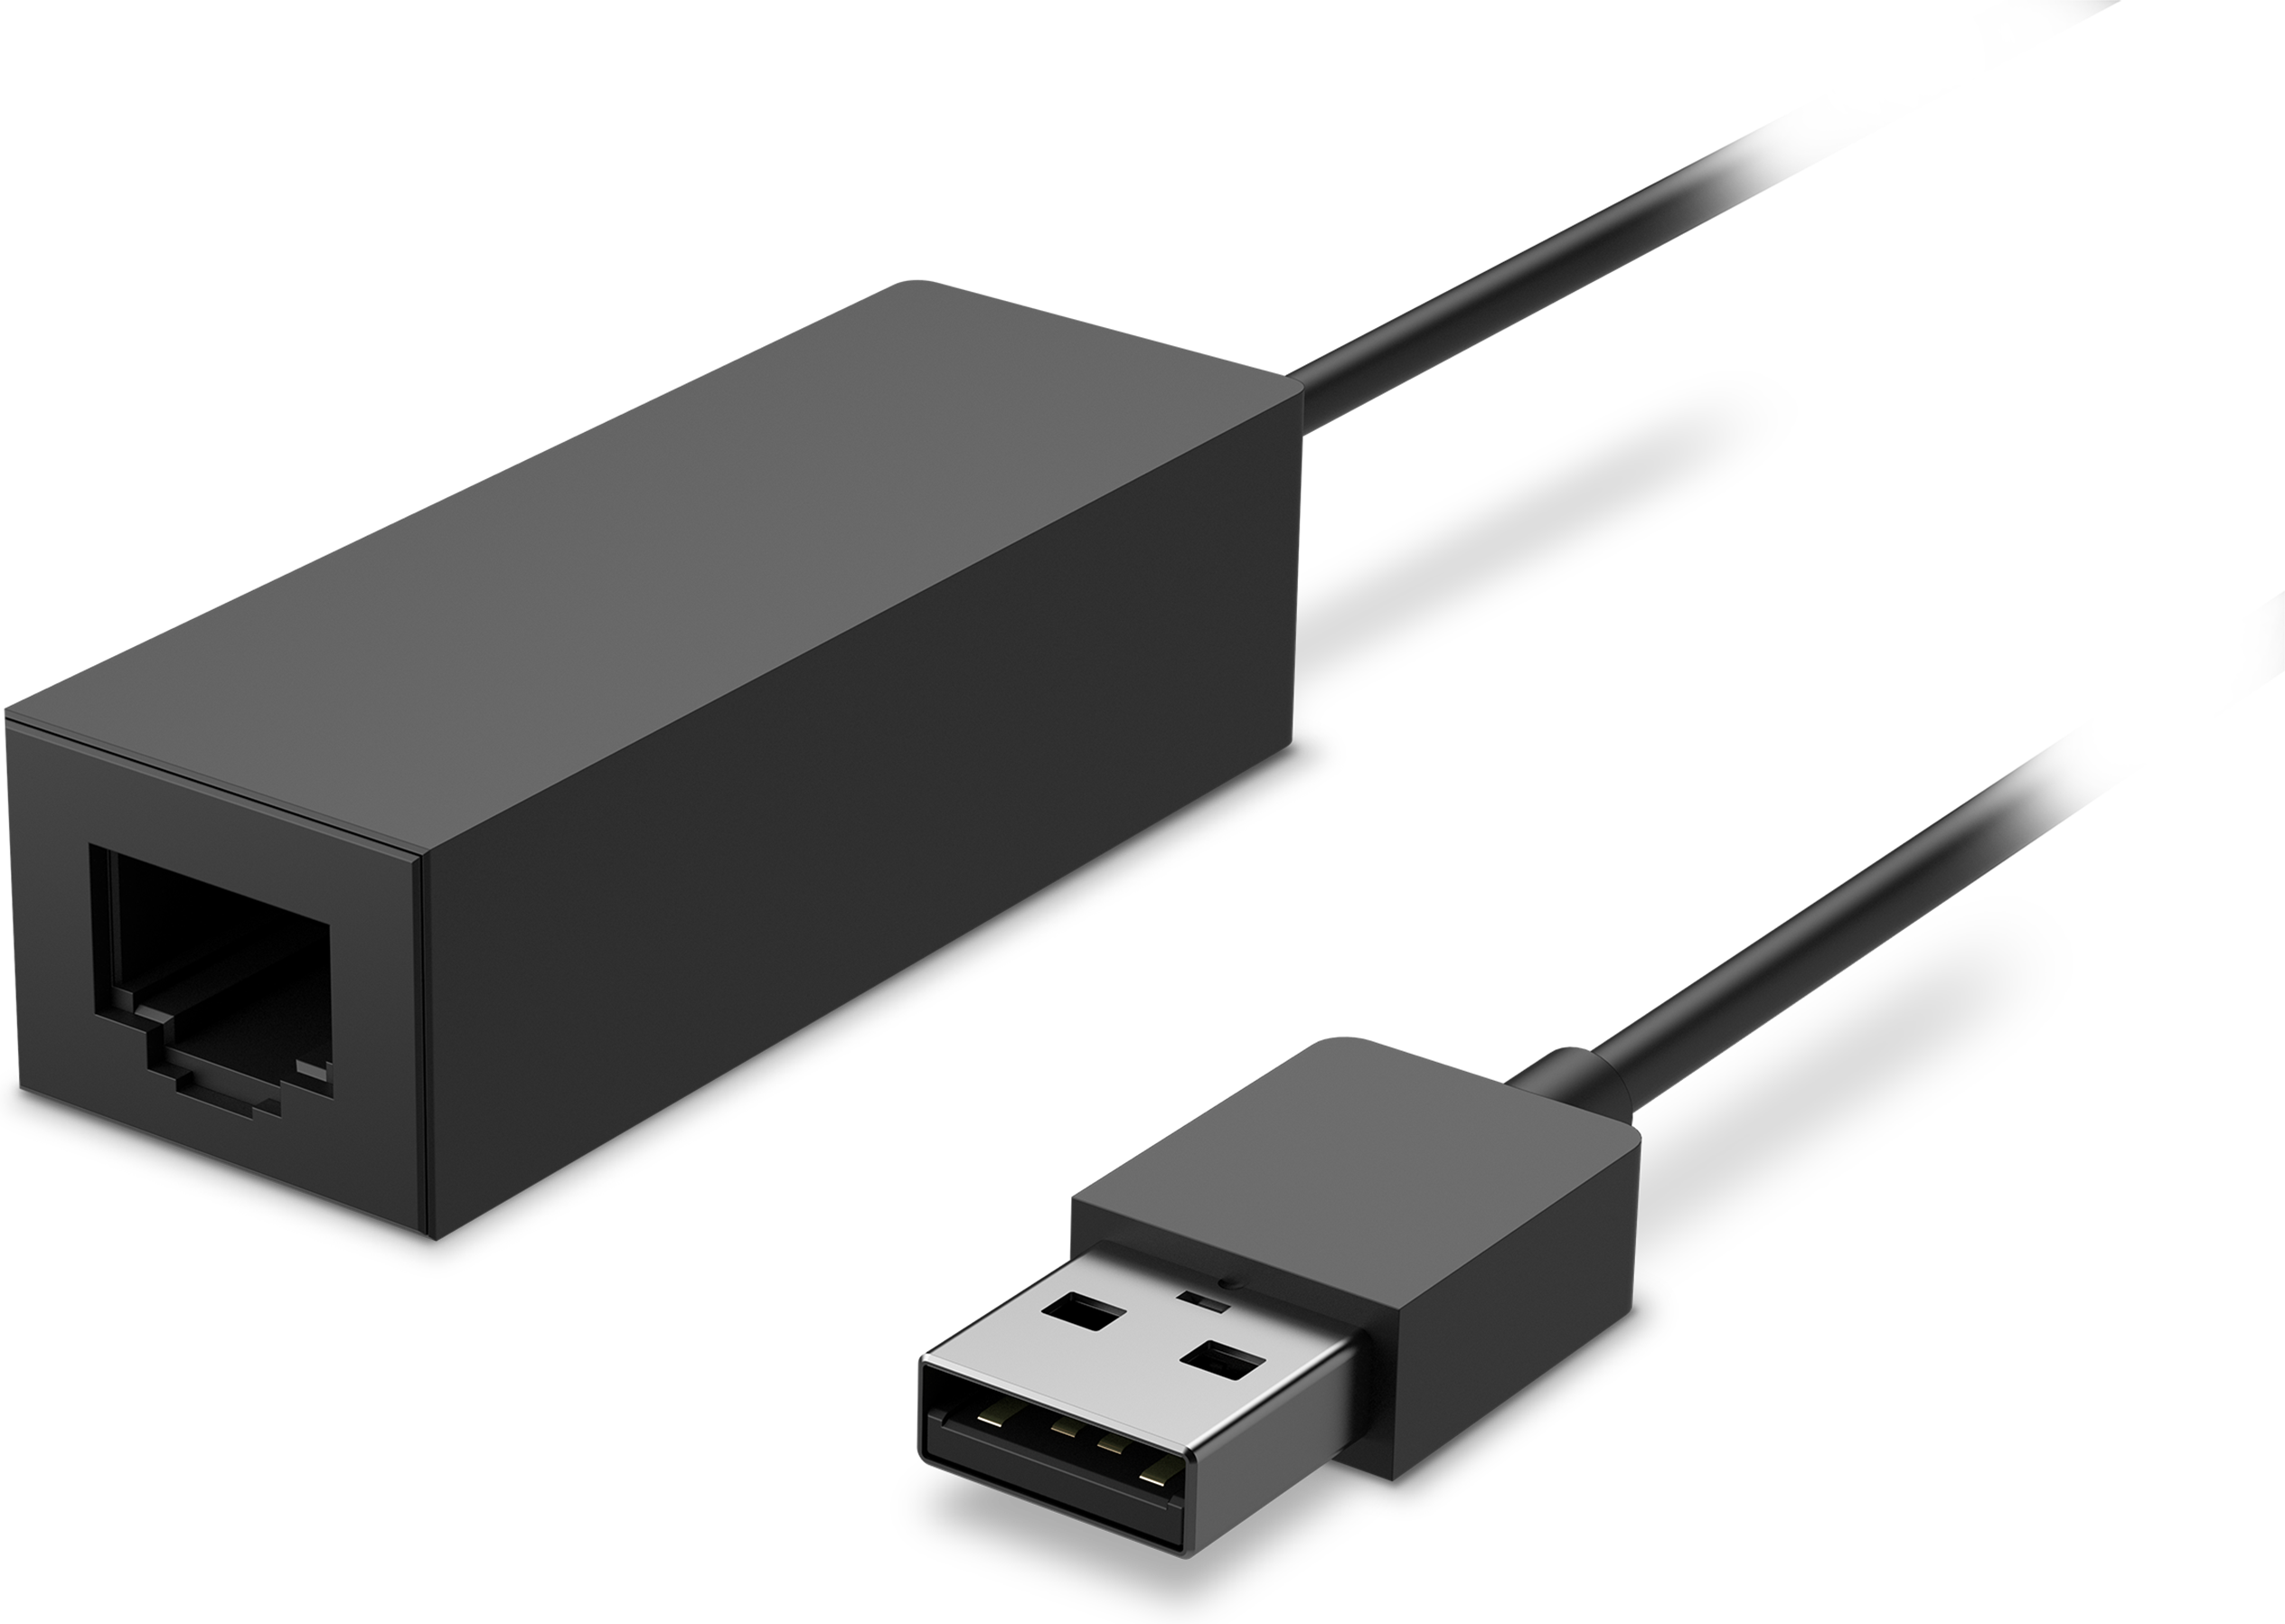 Microsoft Ethernet Adapter - USB 3.0 Gigabit